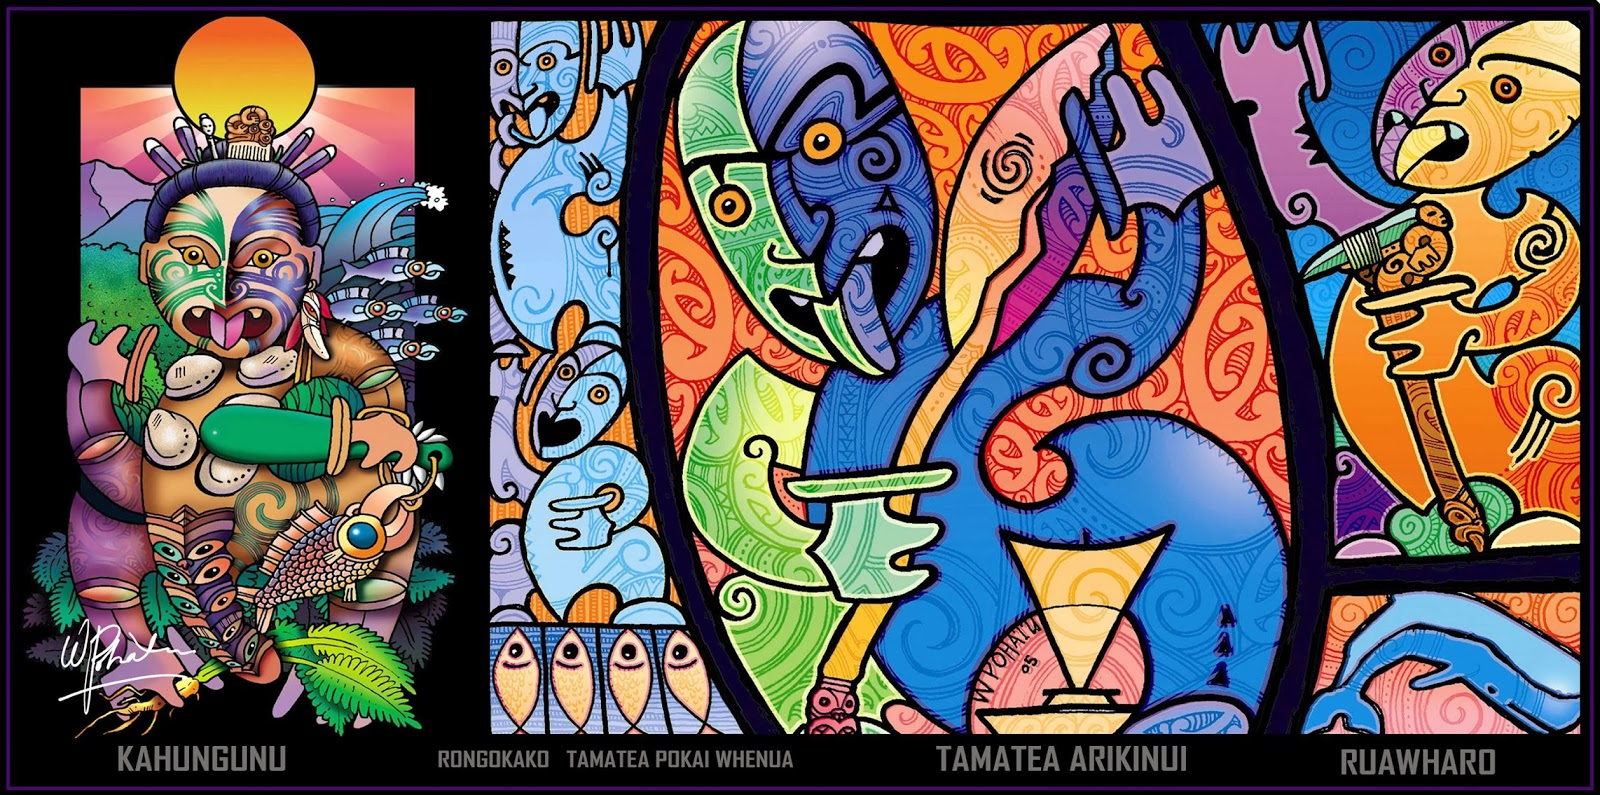 Whanau mourn the loss of one of the greatest Maori graphic designers of our time